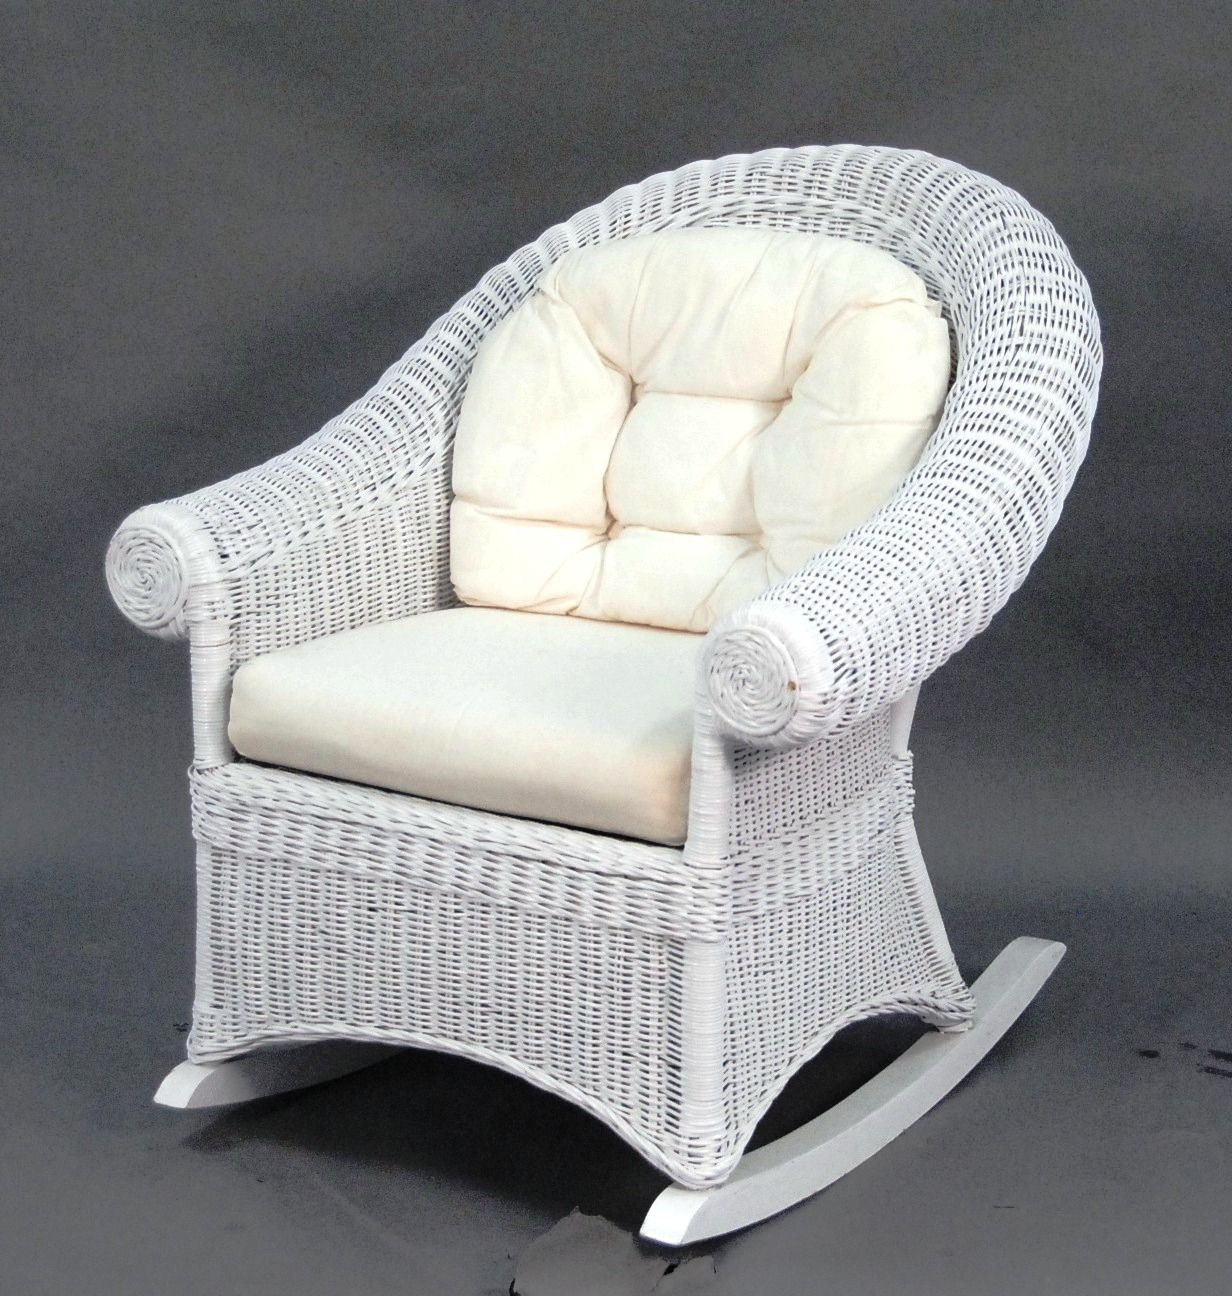 Superieur Choosing A White Wicker Rocking Chair   Http://www.antwandavis.com